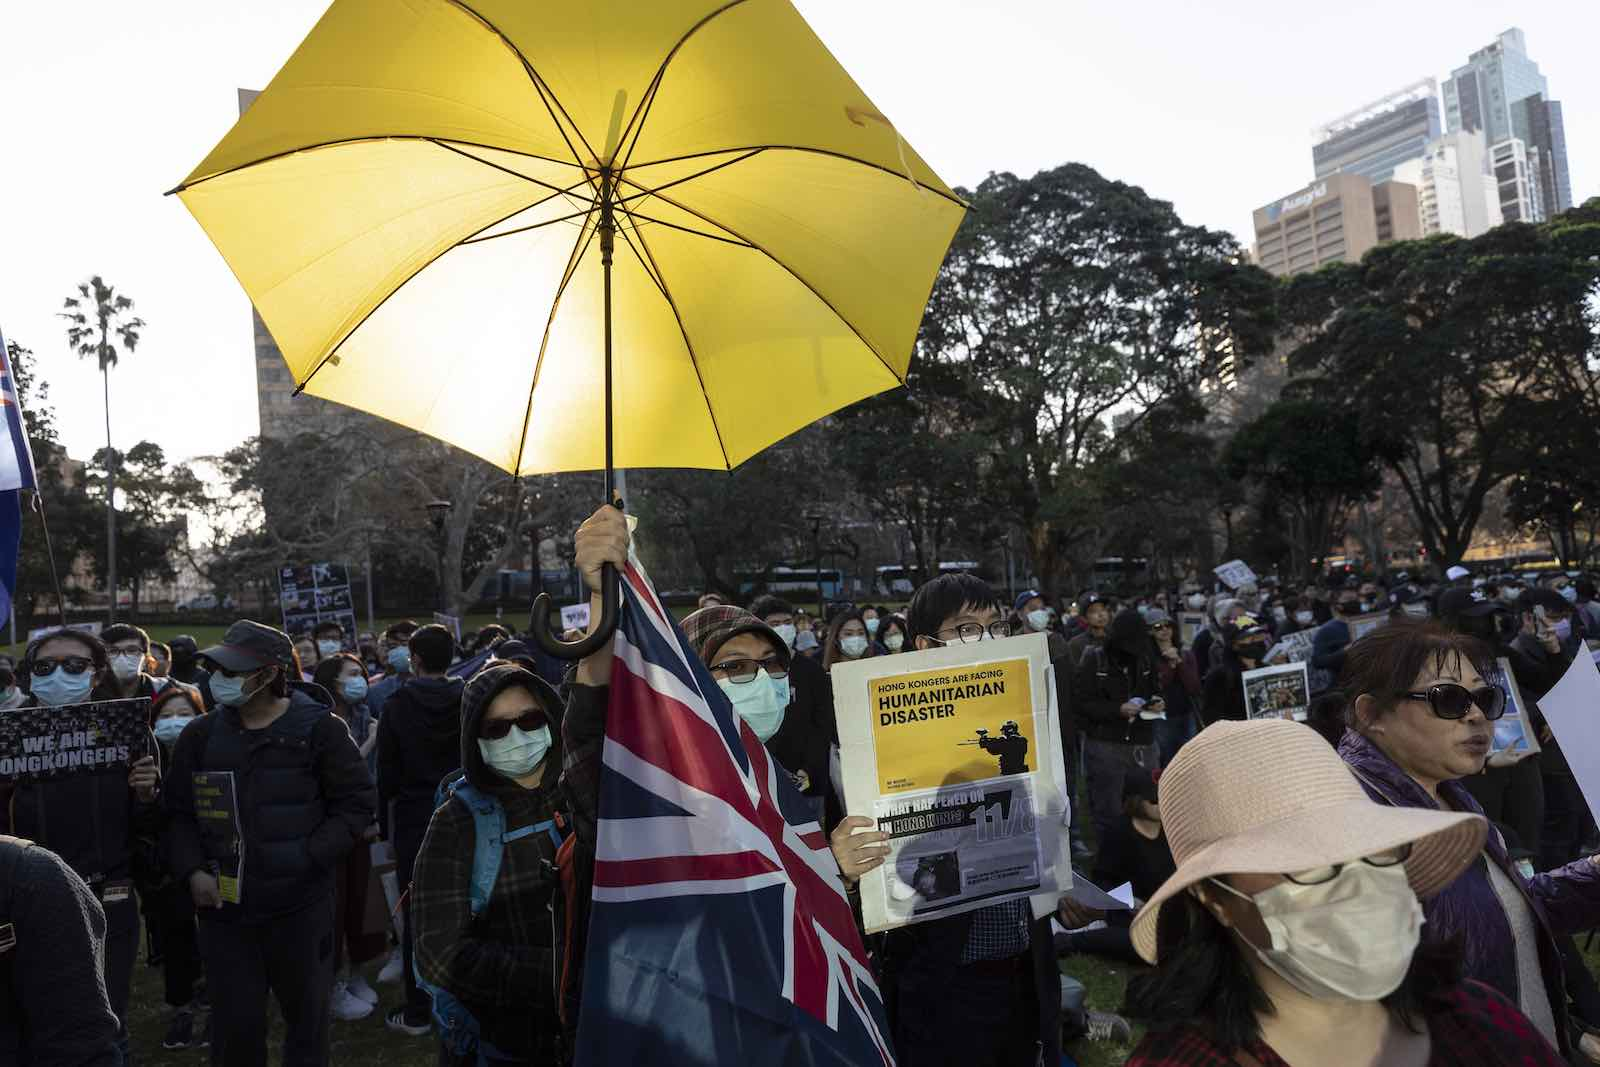 Demonstration in Sydney in support of Hong Kong democracy movement, 18 August 2019 (Photo: Brook Mitchell/Getty Images)